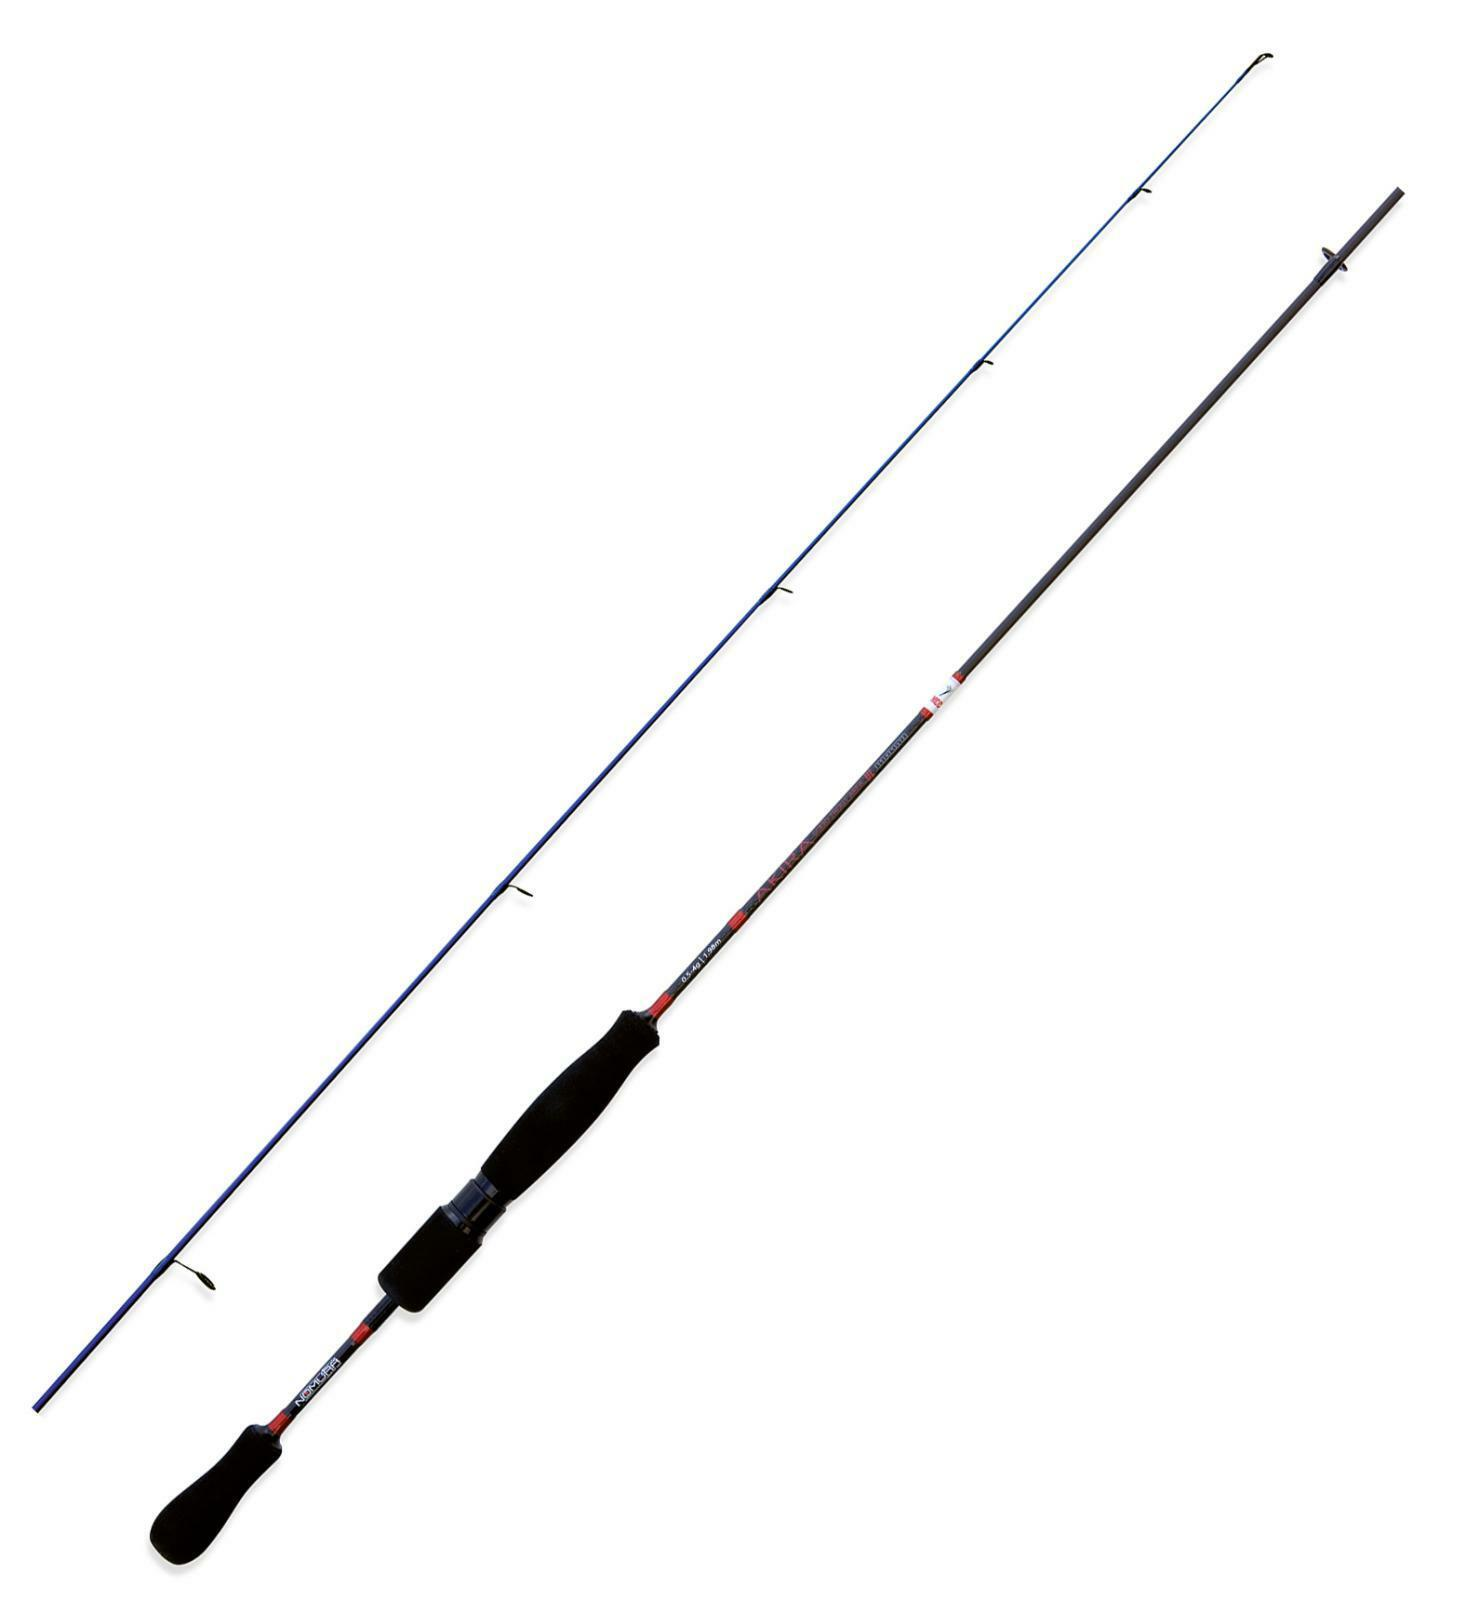 NM20520417 Nomura Canna pesca Trout Area Akira Solid 1,70cm  0,5-4 gr     PP